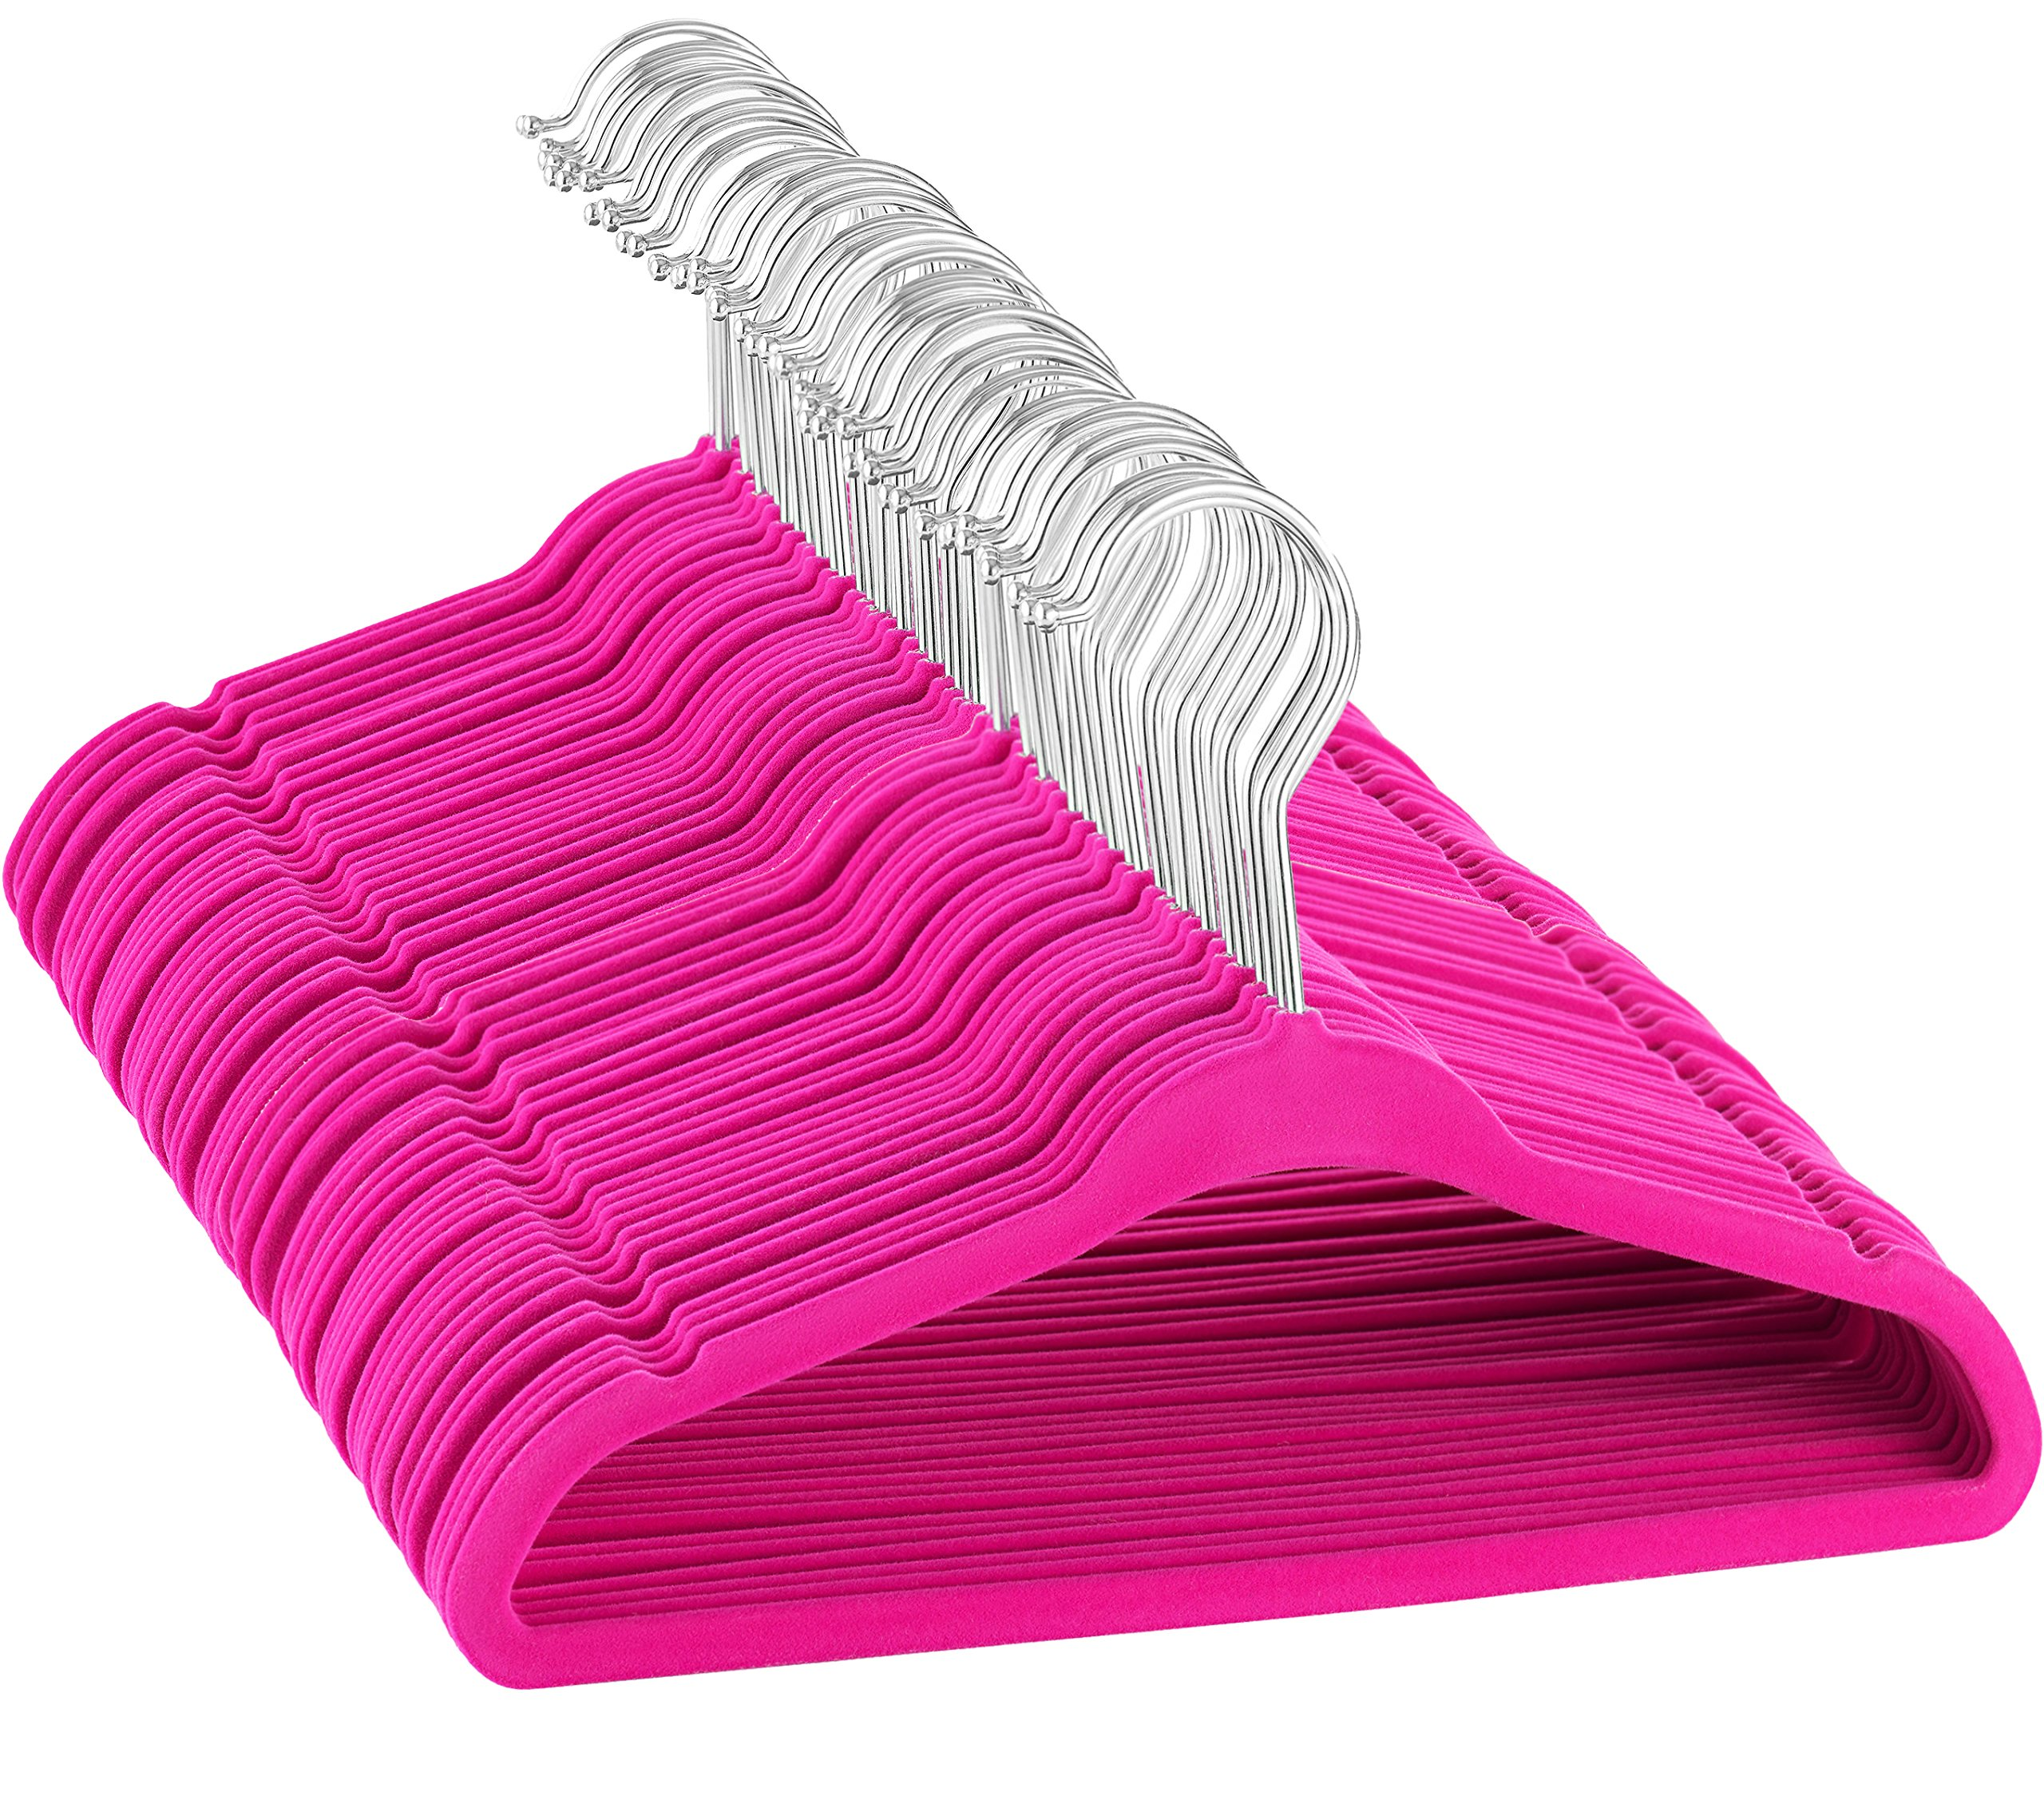 ZOBER - Kids Velvet Hangers - 50 pack - 14'' wide - Premium Quality Space Saving Strong and Durable 360 Degree Chrome Swivel Hook Ultra Thin Non Slip Junior Hangers - (Pink)